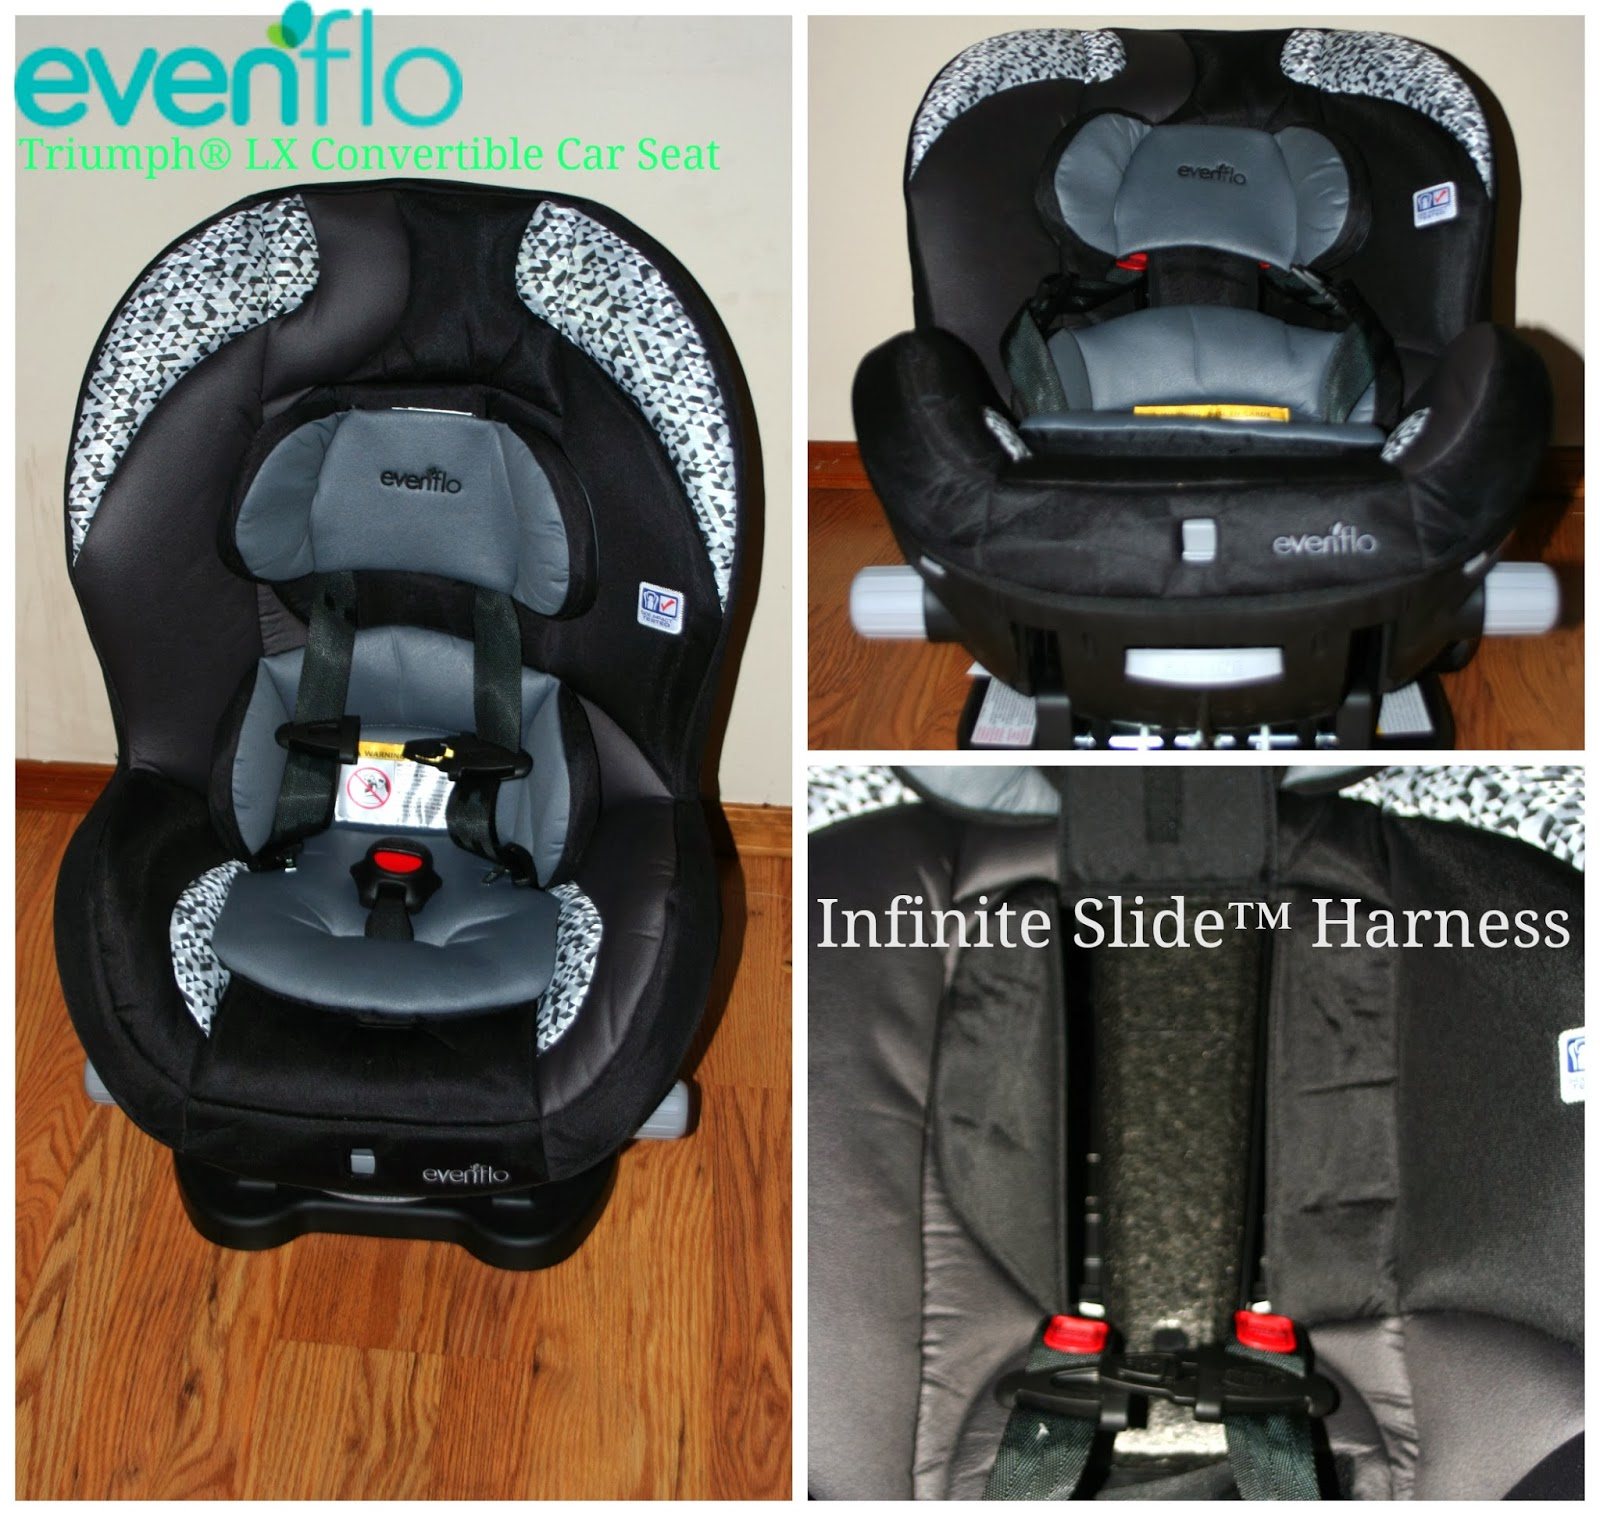 evenflo triumph lx convertible car seat review. Black Bedroom Furniture Sets. Home Design Ideas